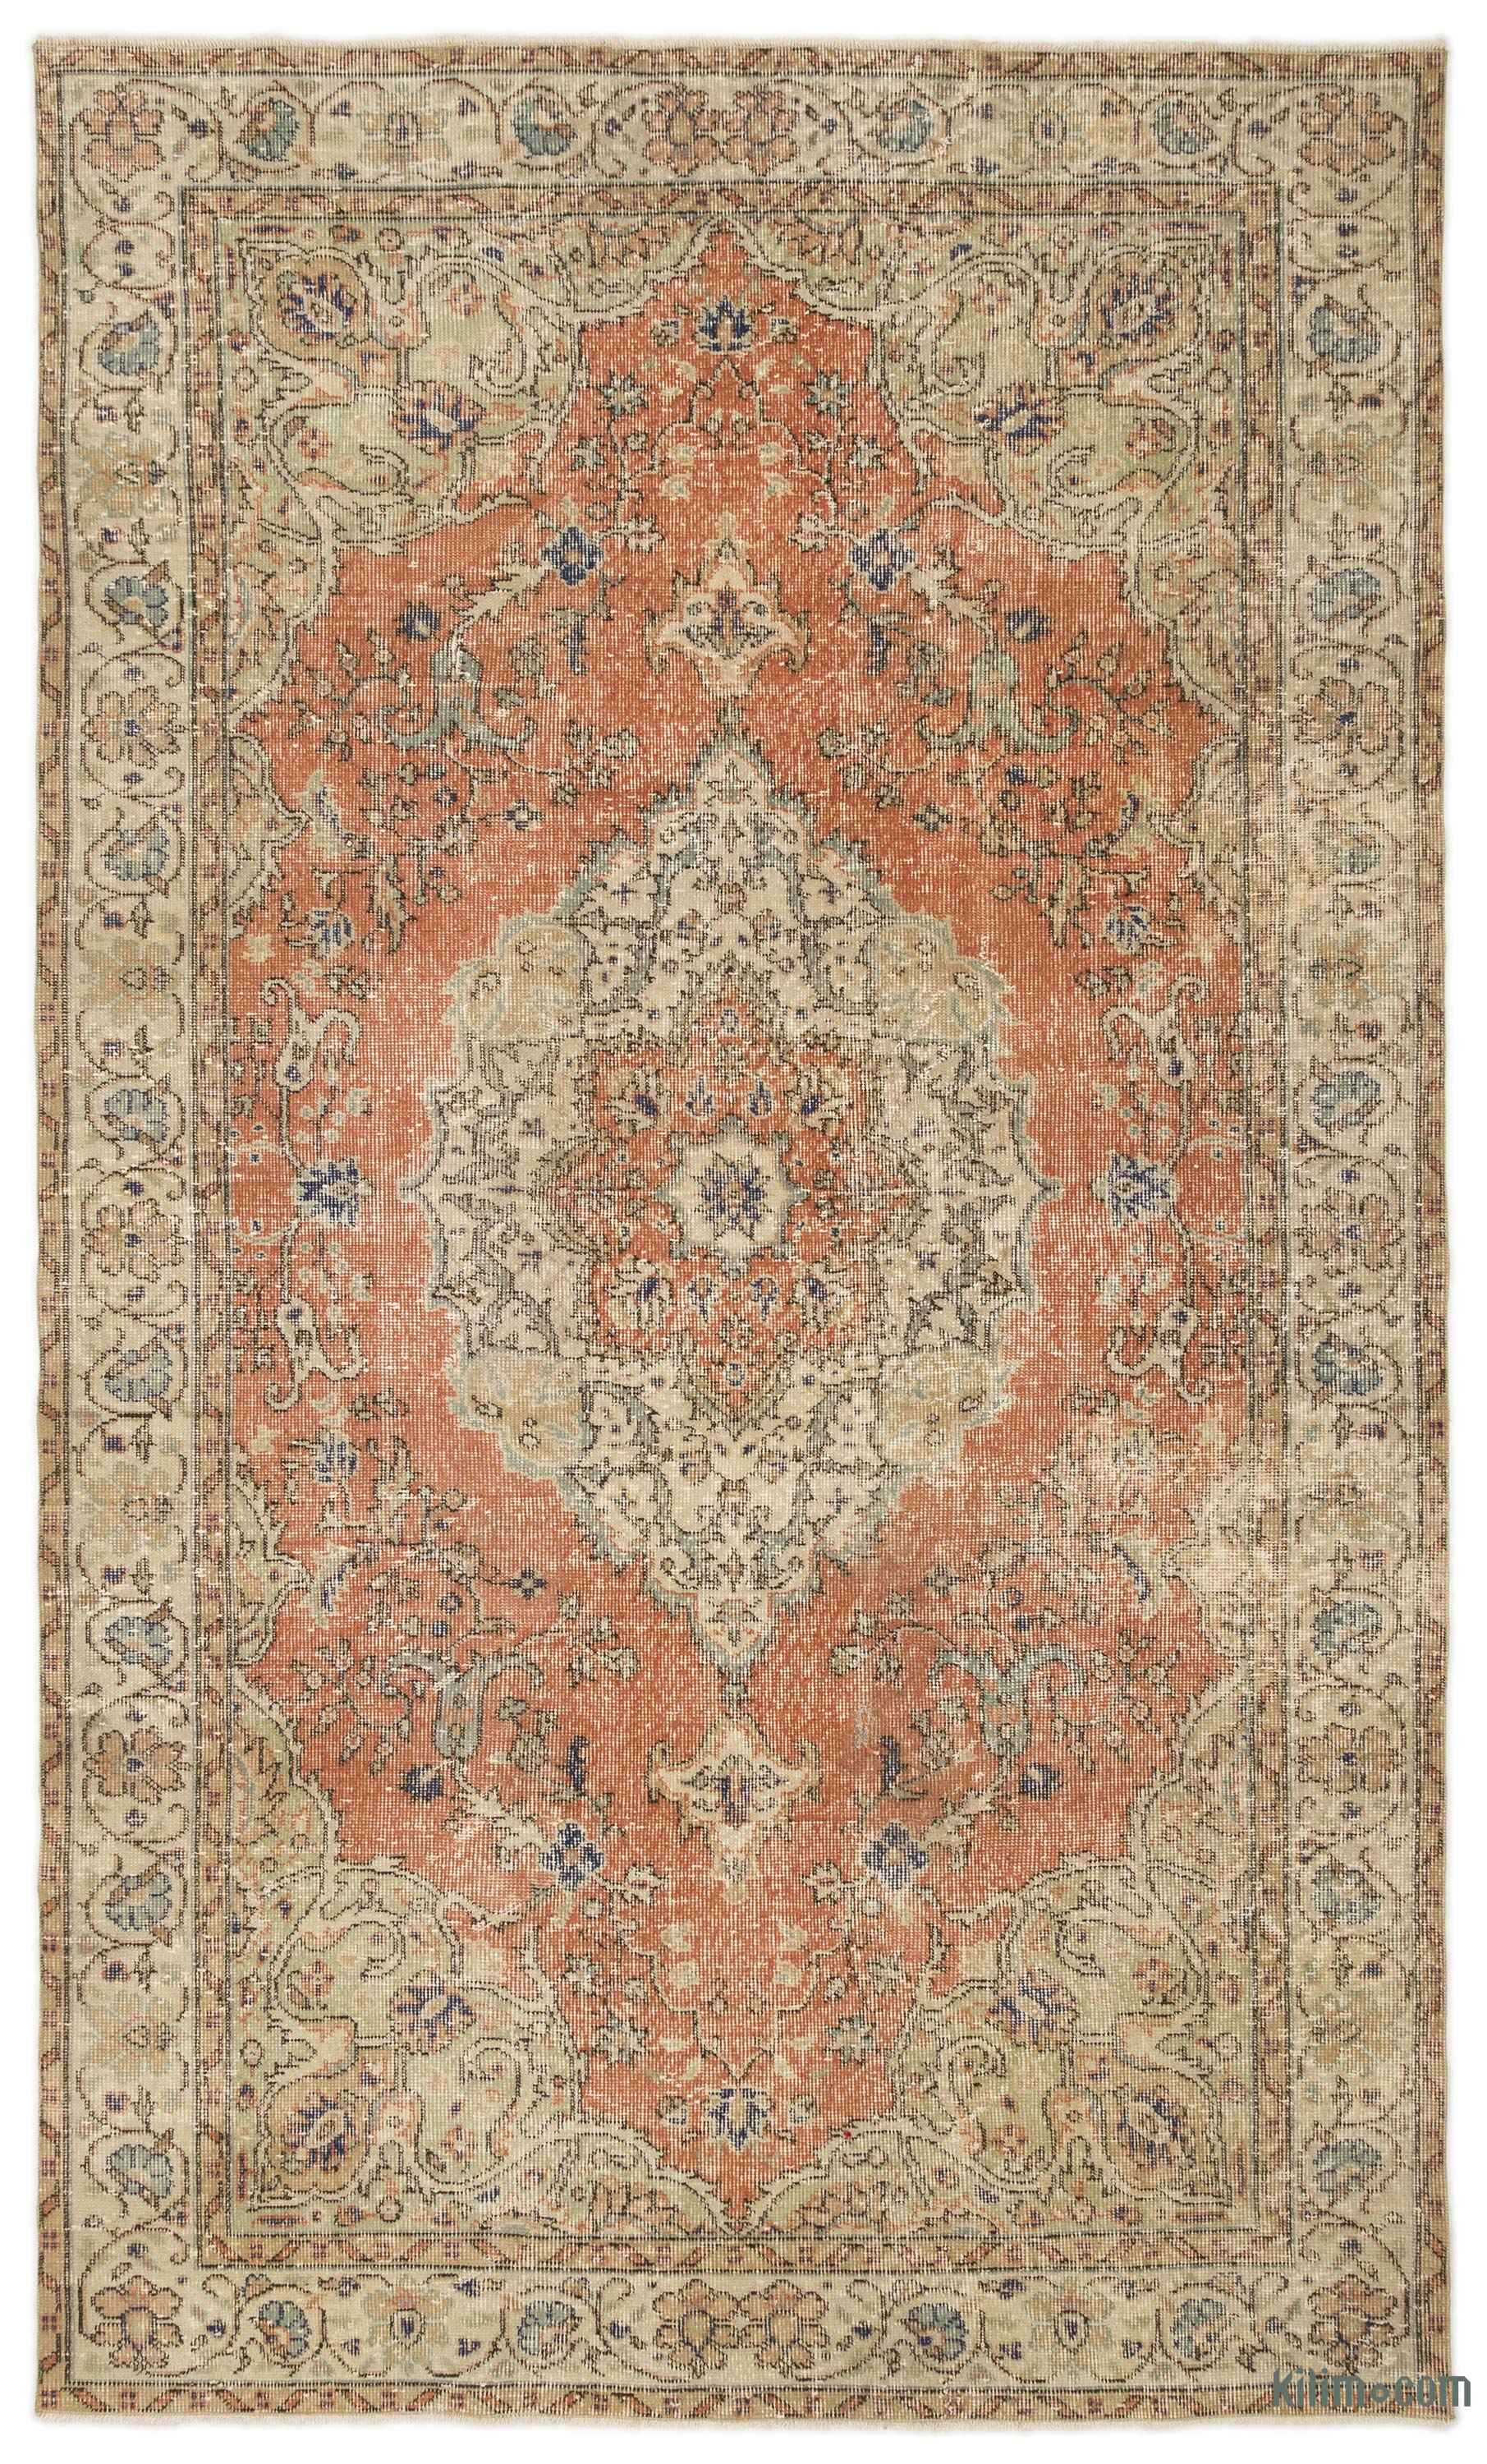 K0022333 Turkish Vintage Rug 5 9 X 9 10 69 In X